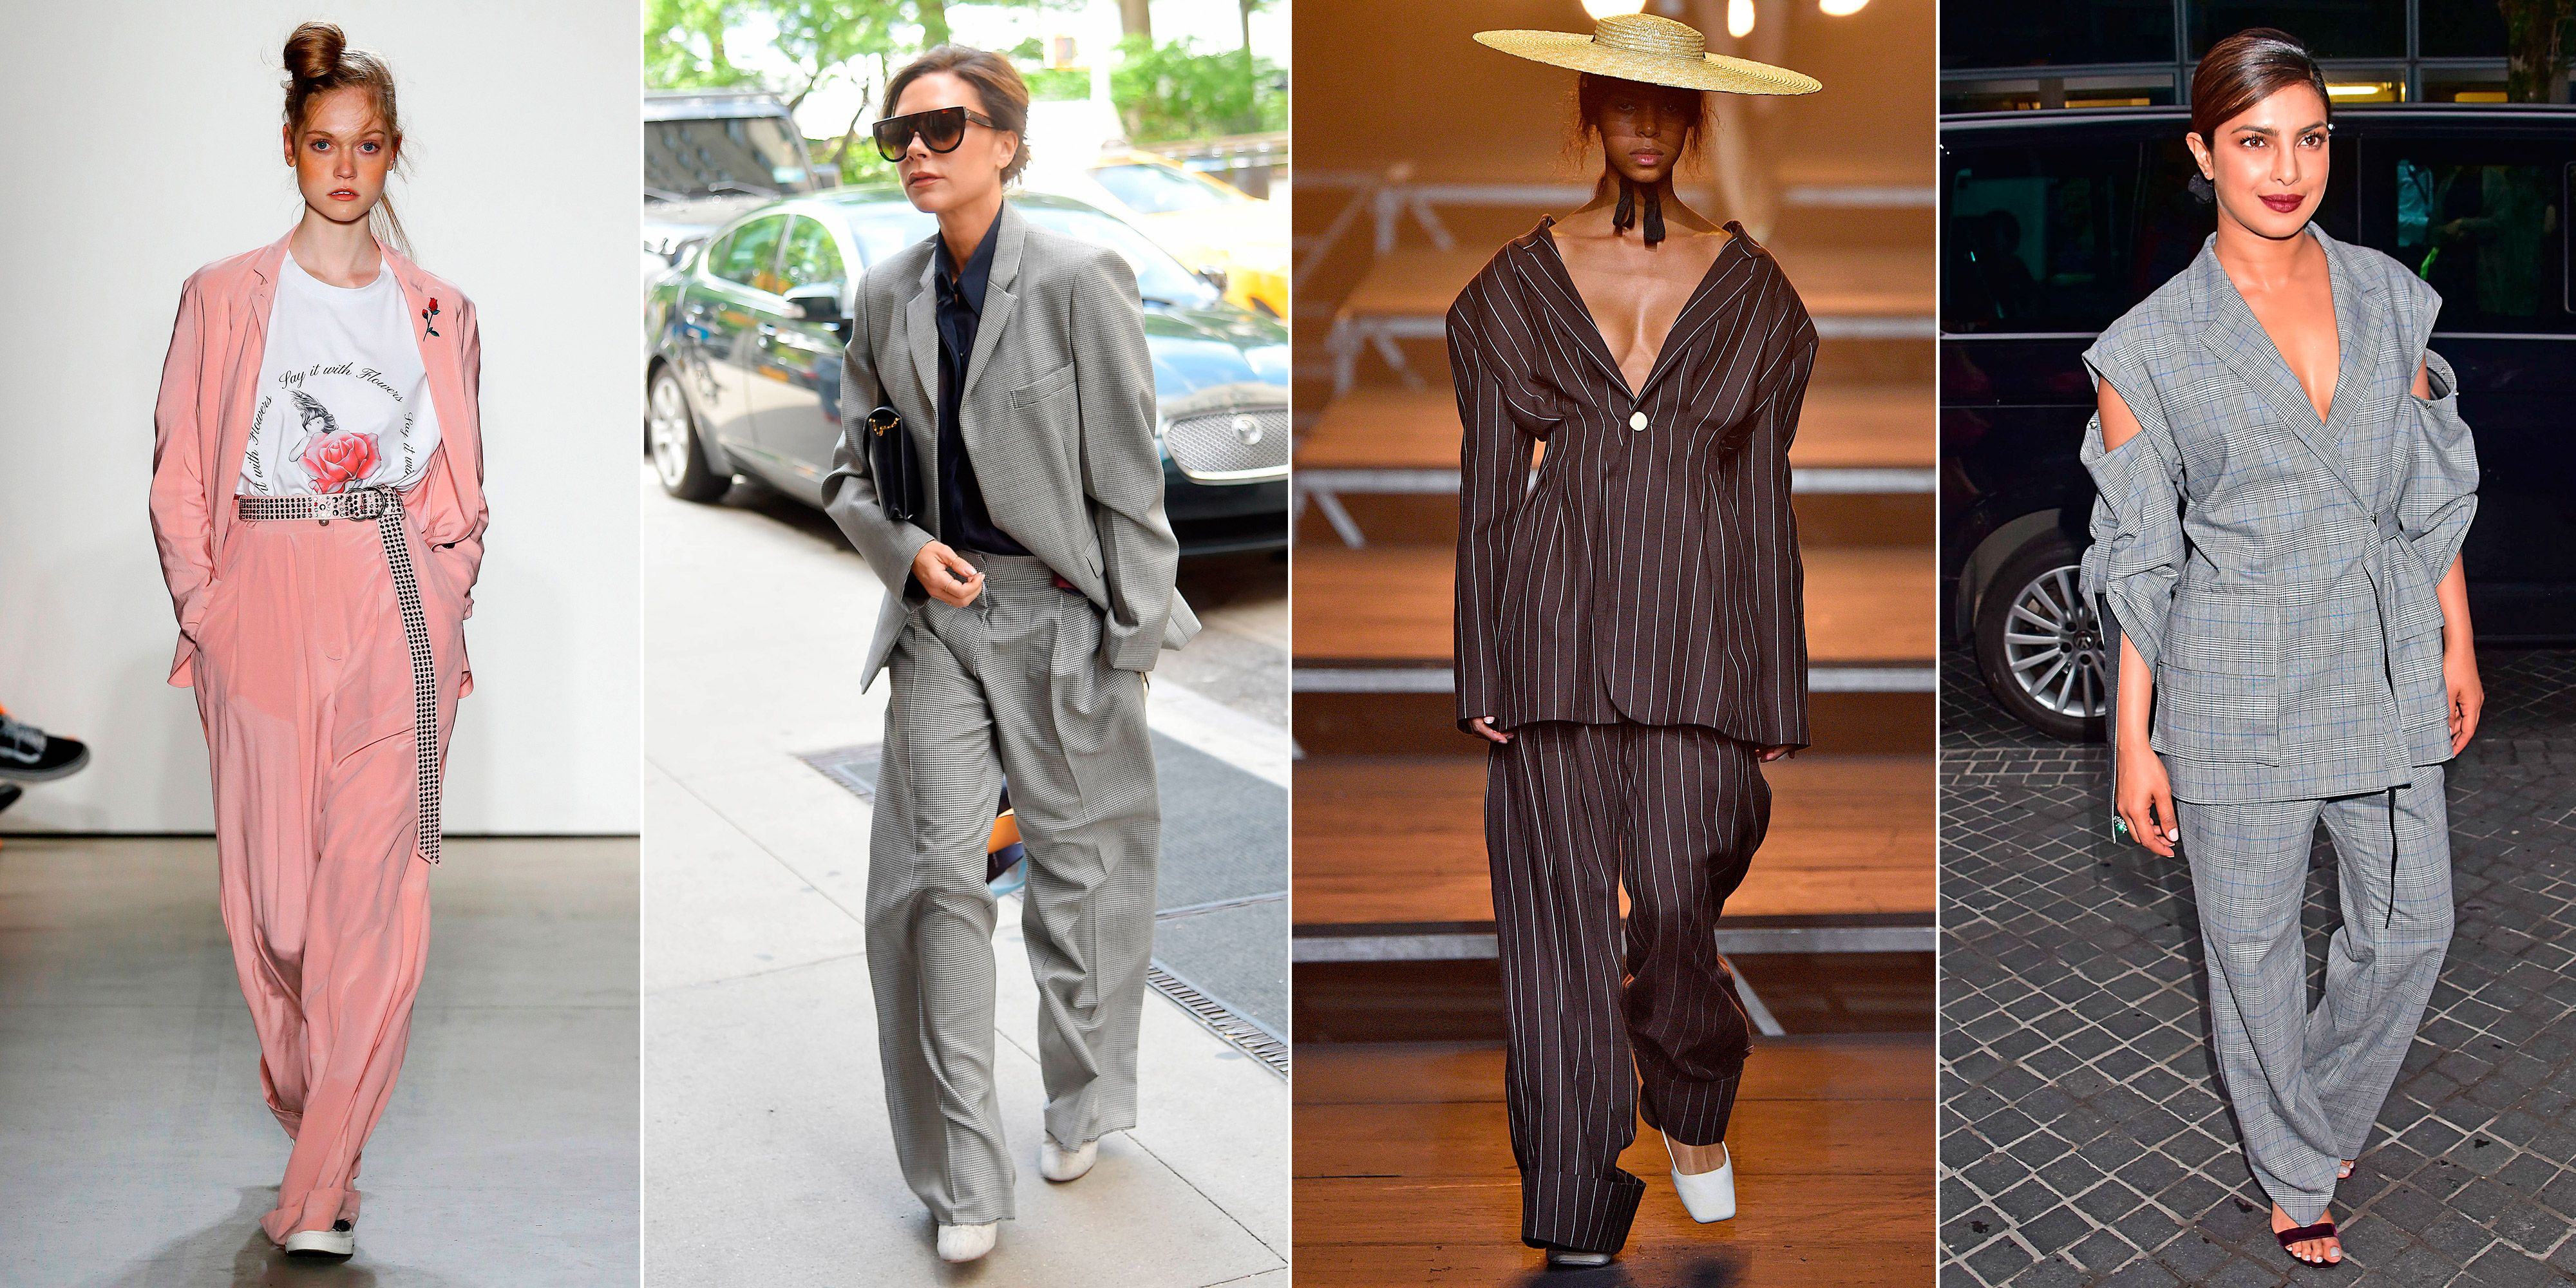 summer trouser suits trend 2017 women s oversized trouser suits